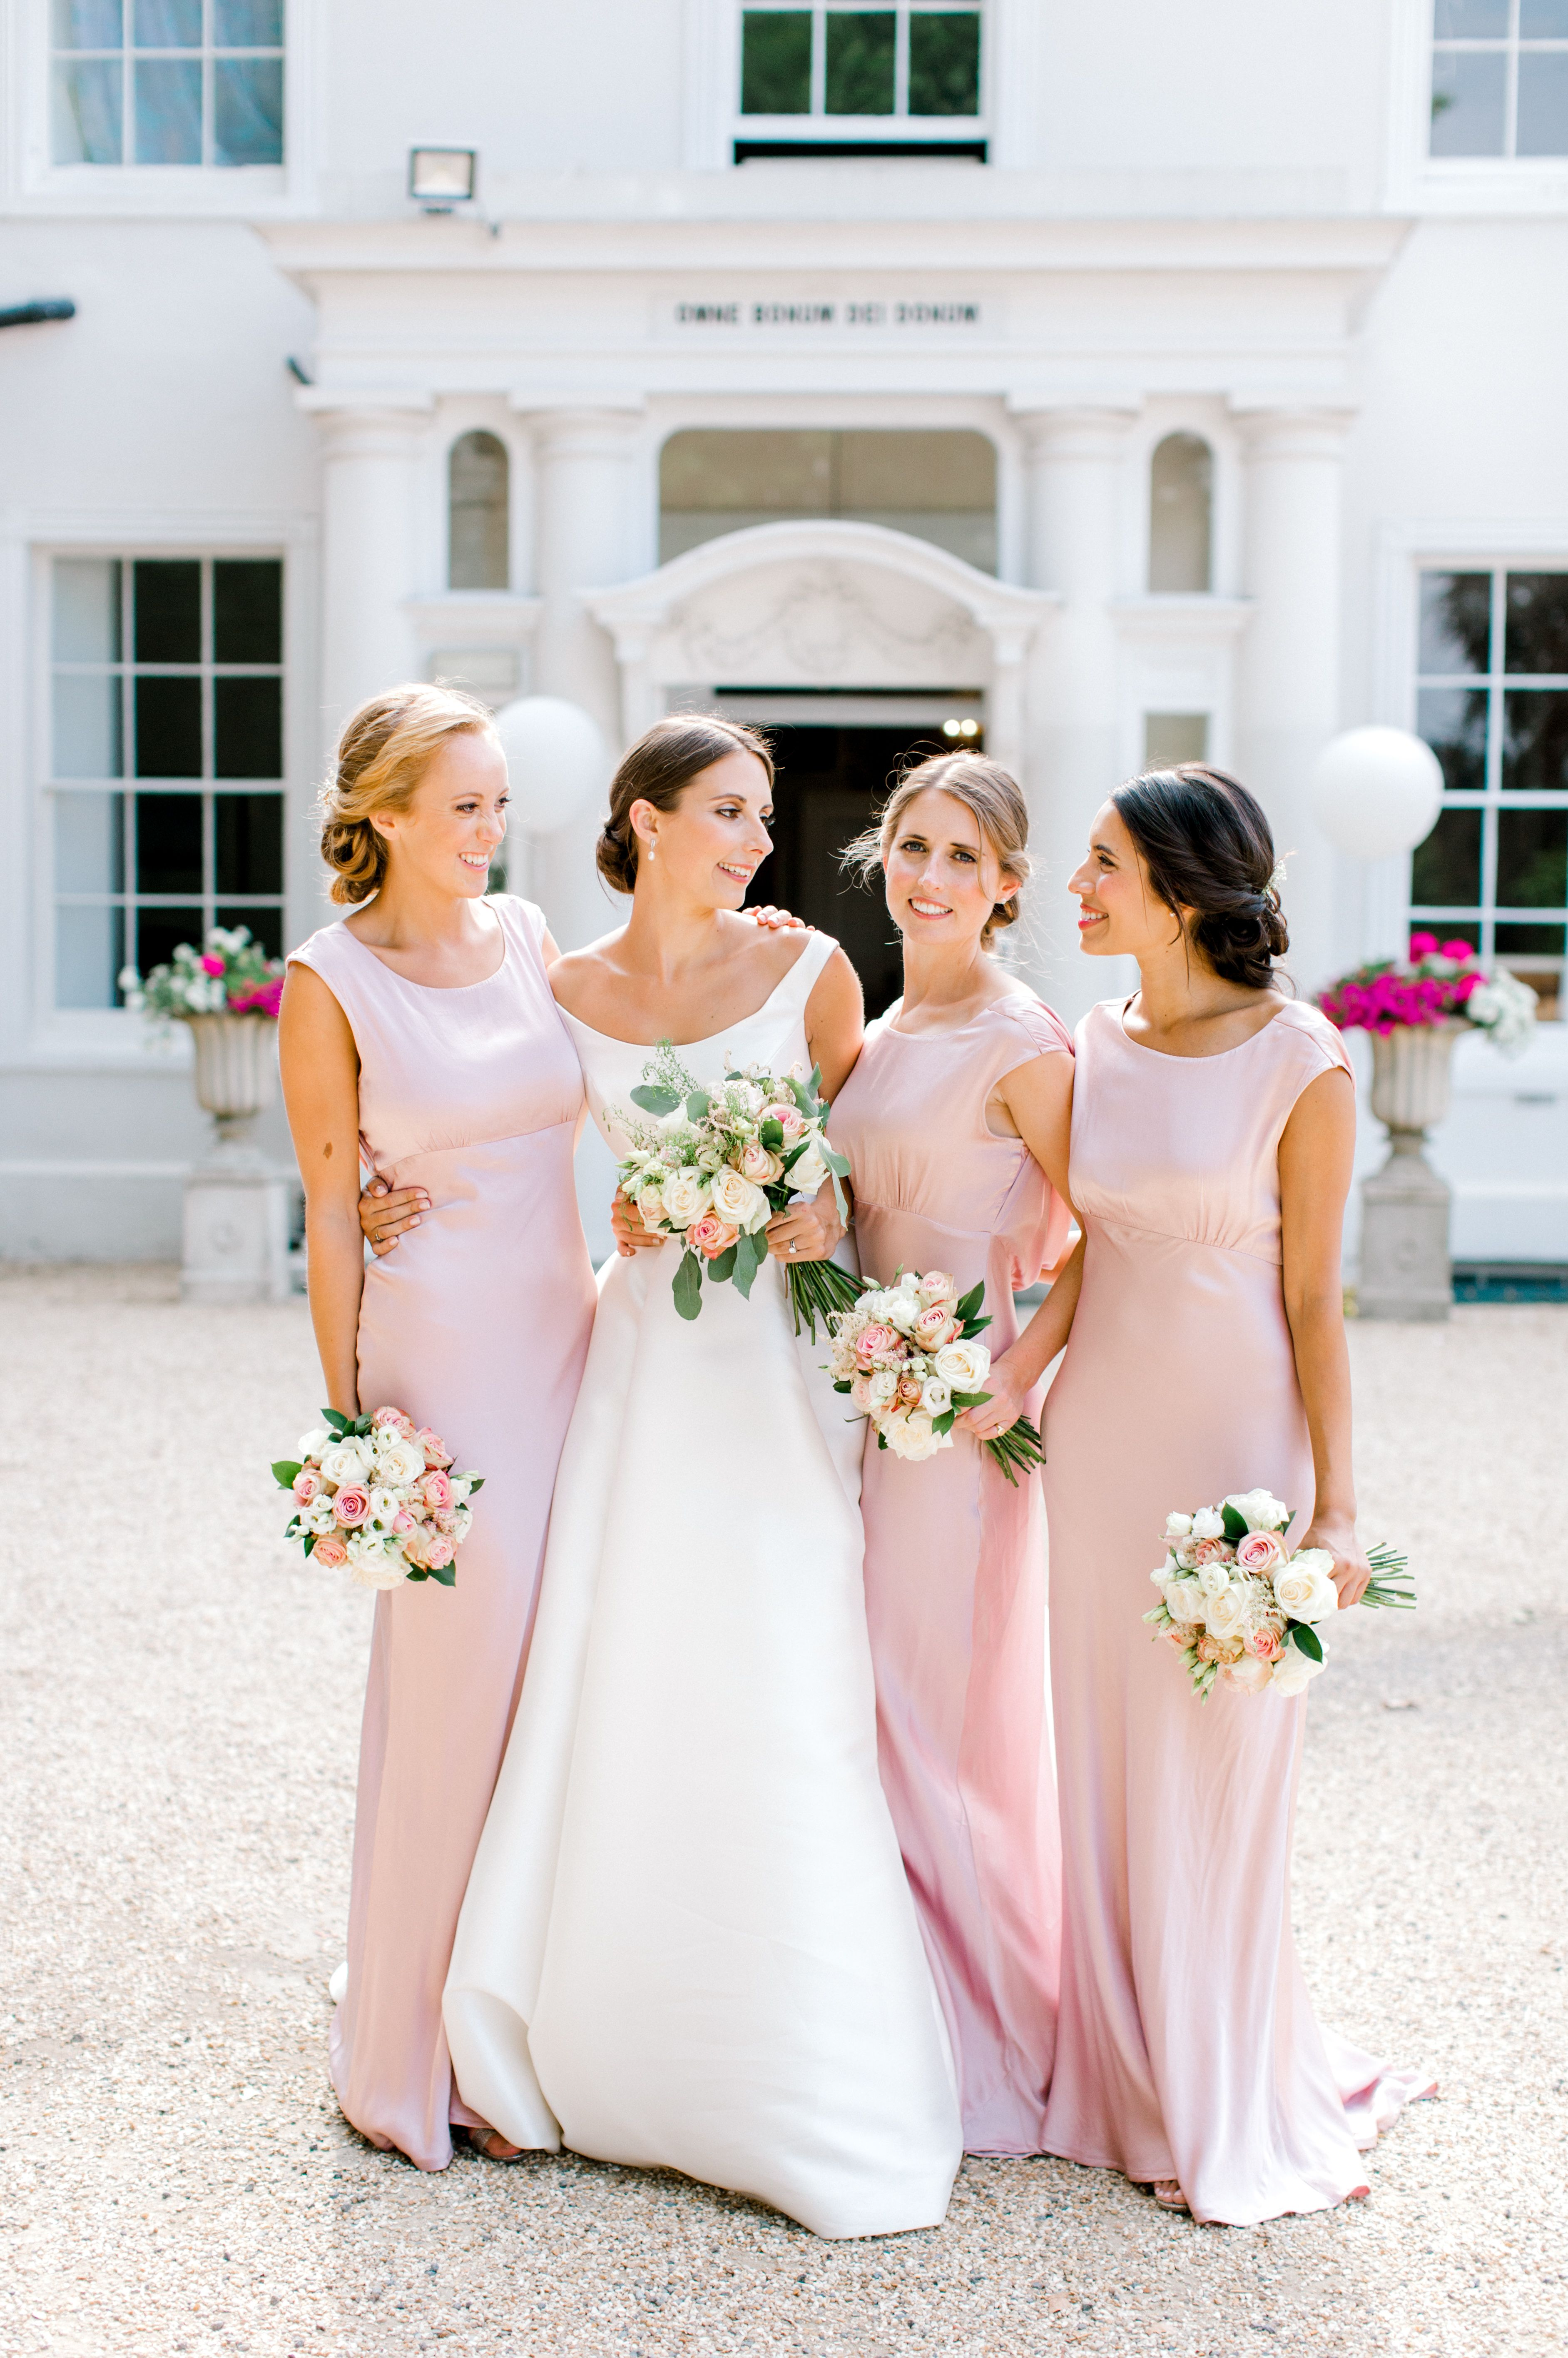 Elegant English Country House Wedding With Ballerina Style At West Hill Park School In 2020 Country Style Wedding Dresses Wedding Dresses Simple Beautiful Bridesmaids